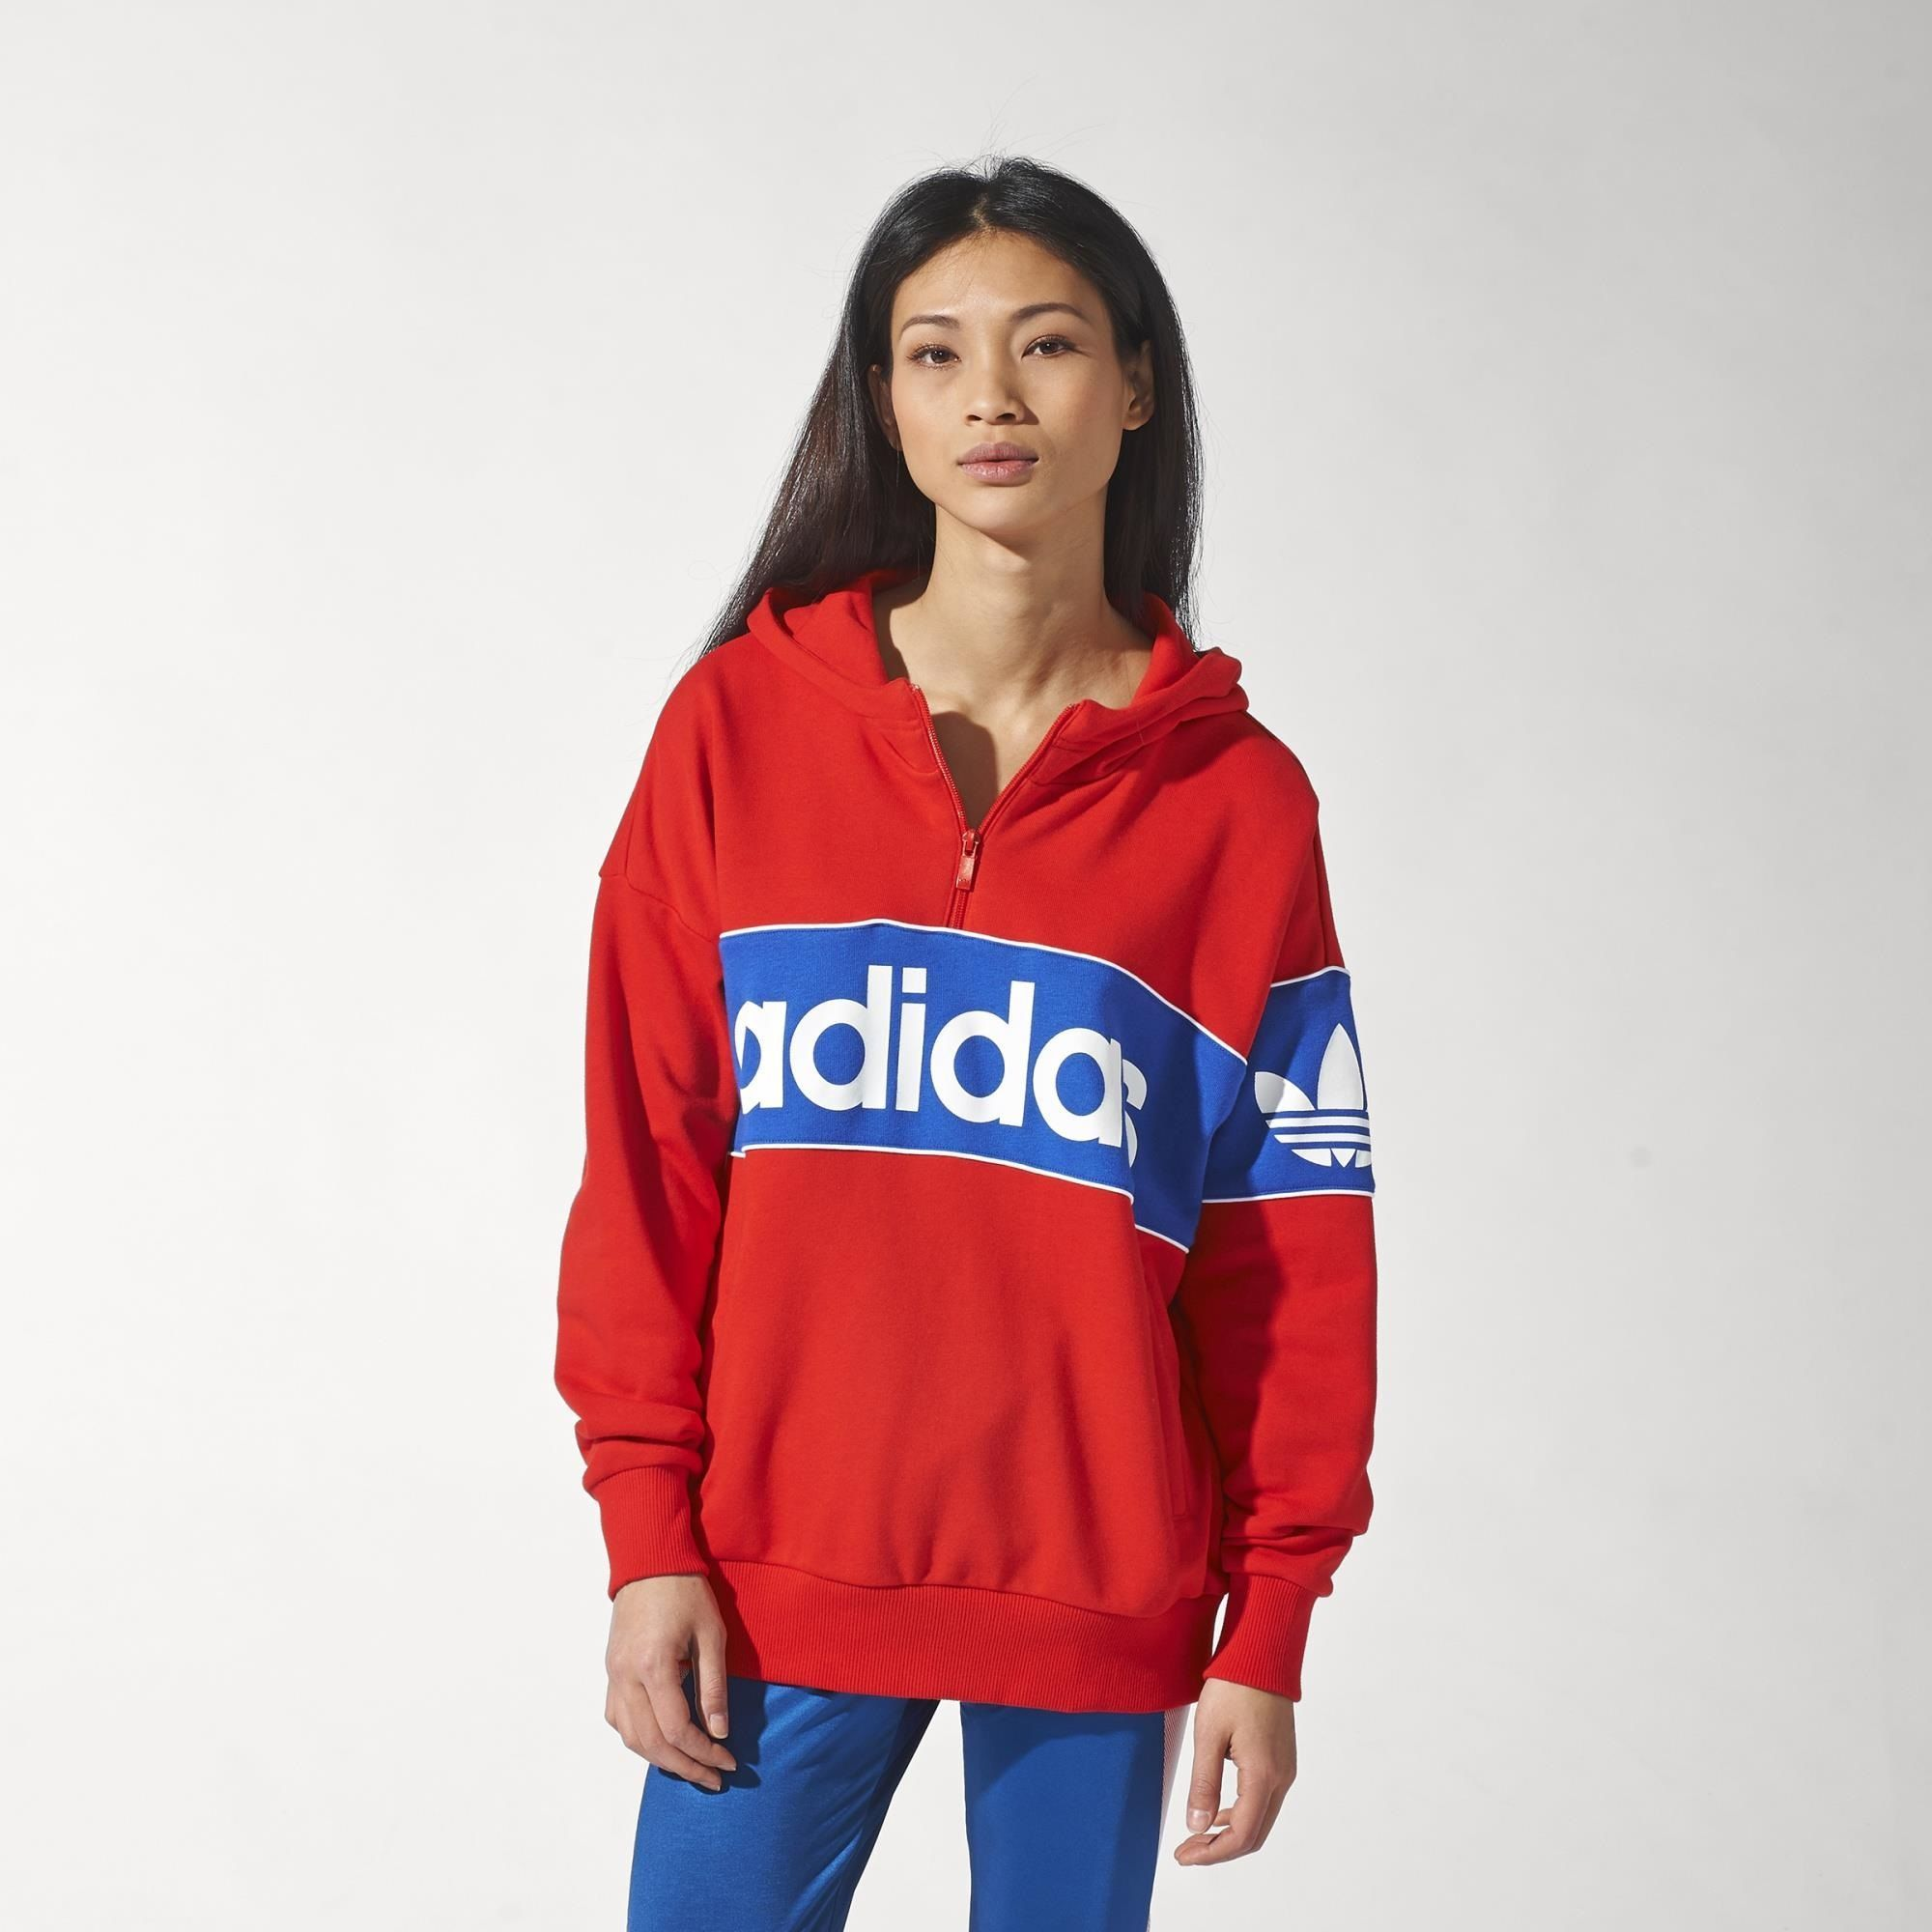 085eaf3e82 adidas - City London Hoodie | Sporting Fashion | Adidas women ...